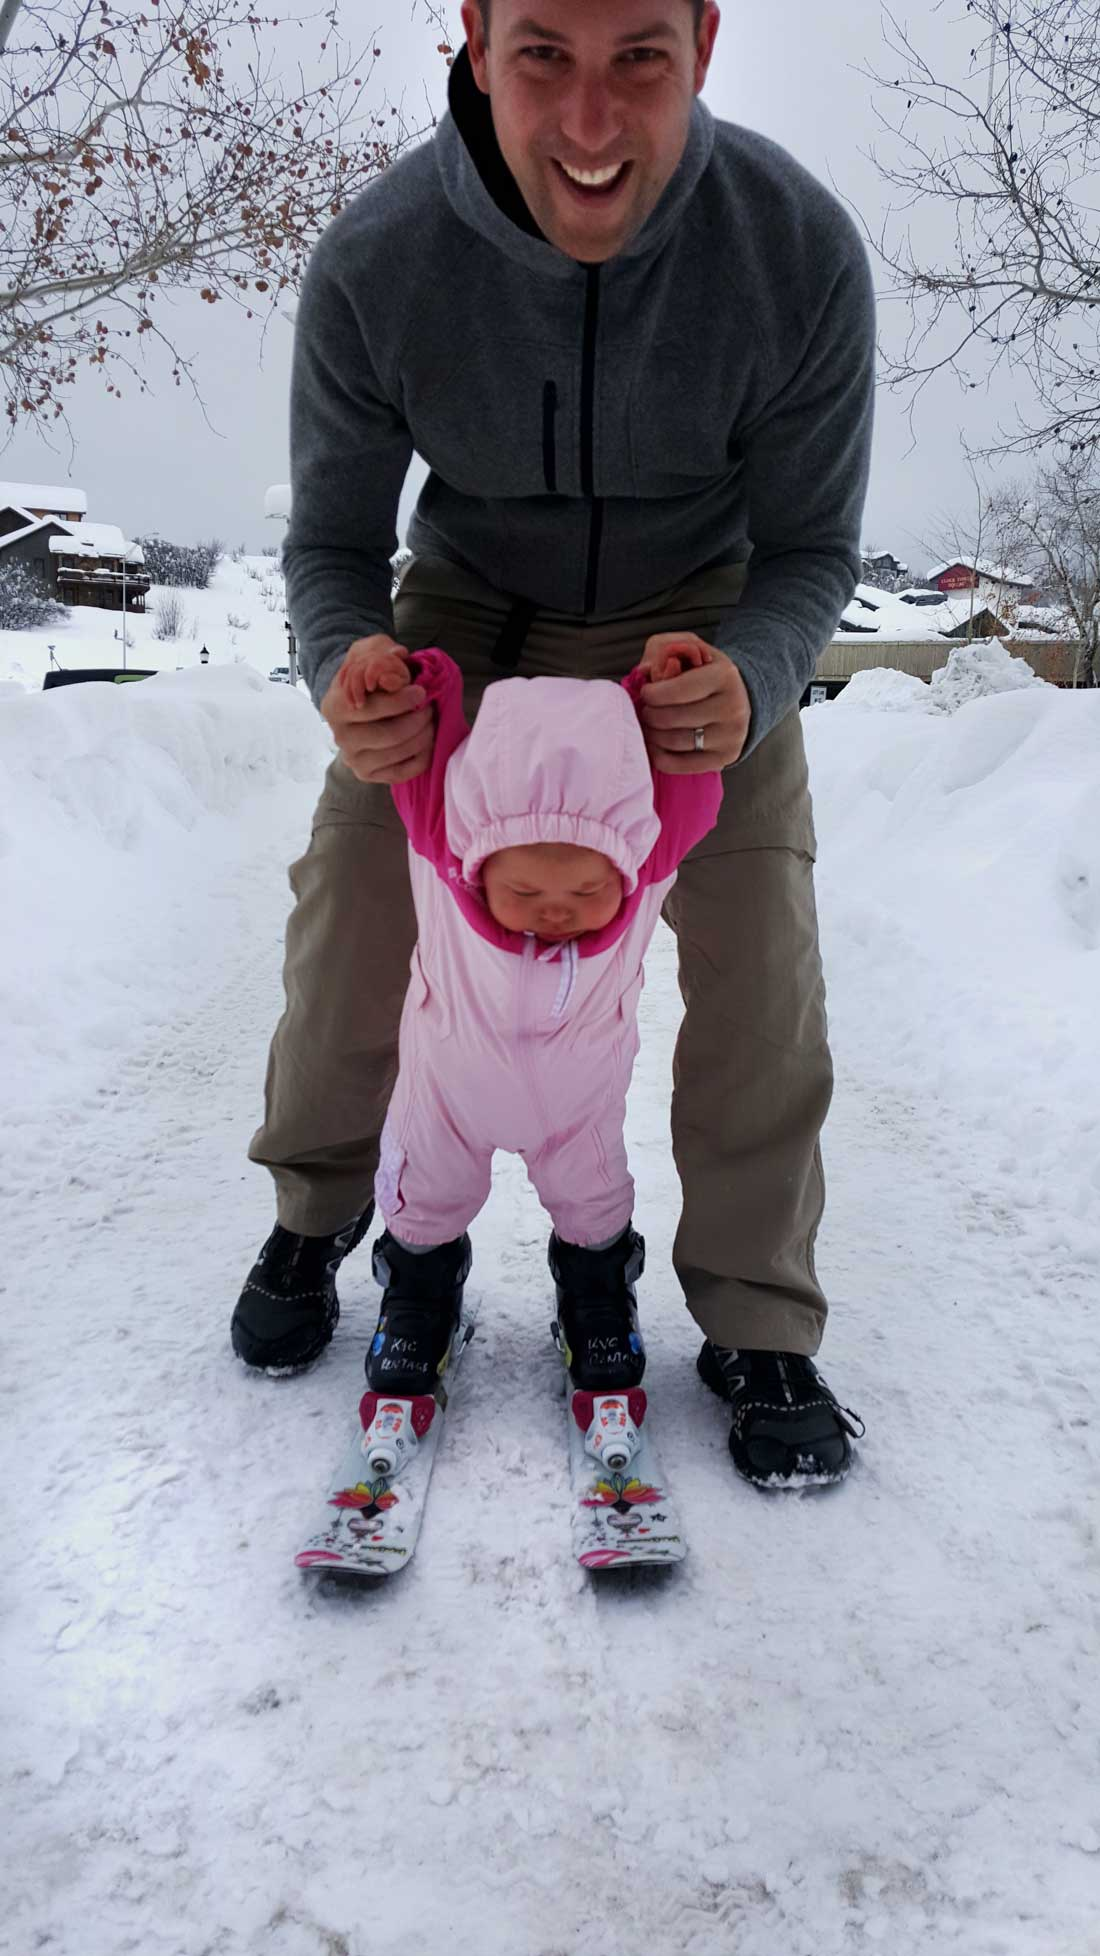 how to teach kids to ski - baby on skis